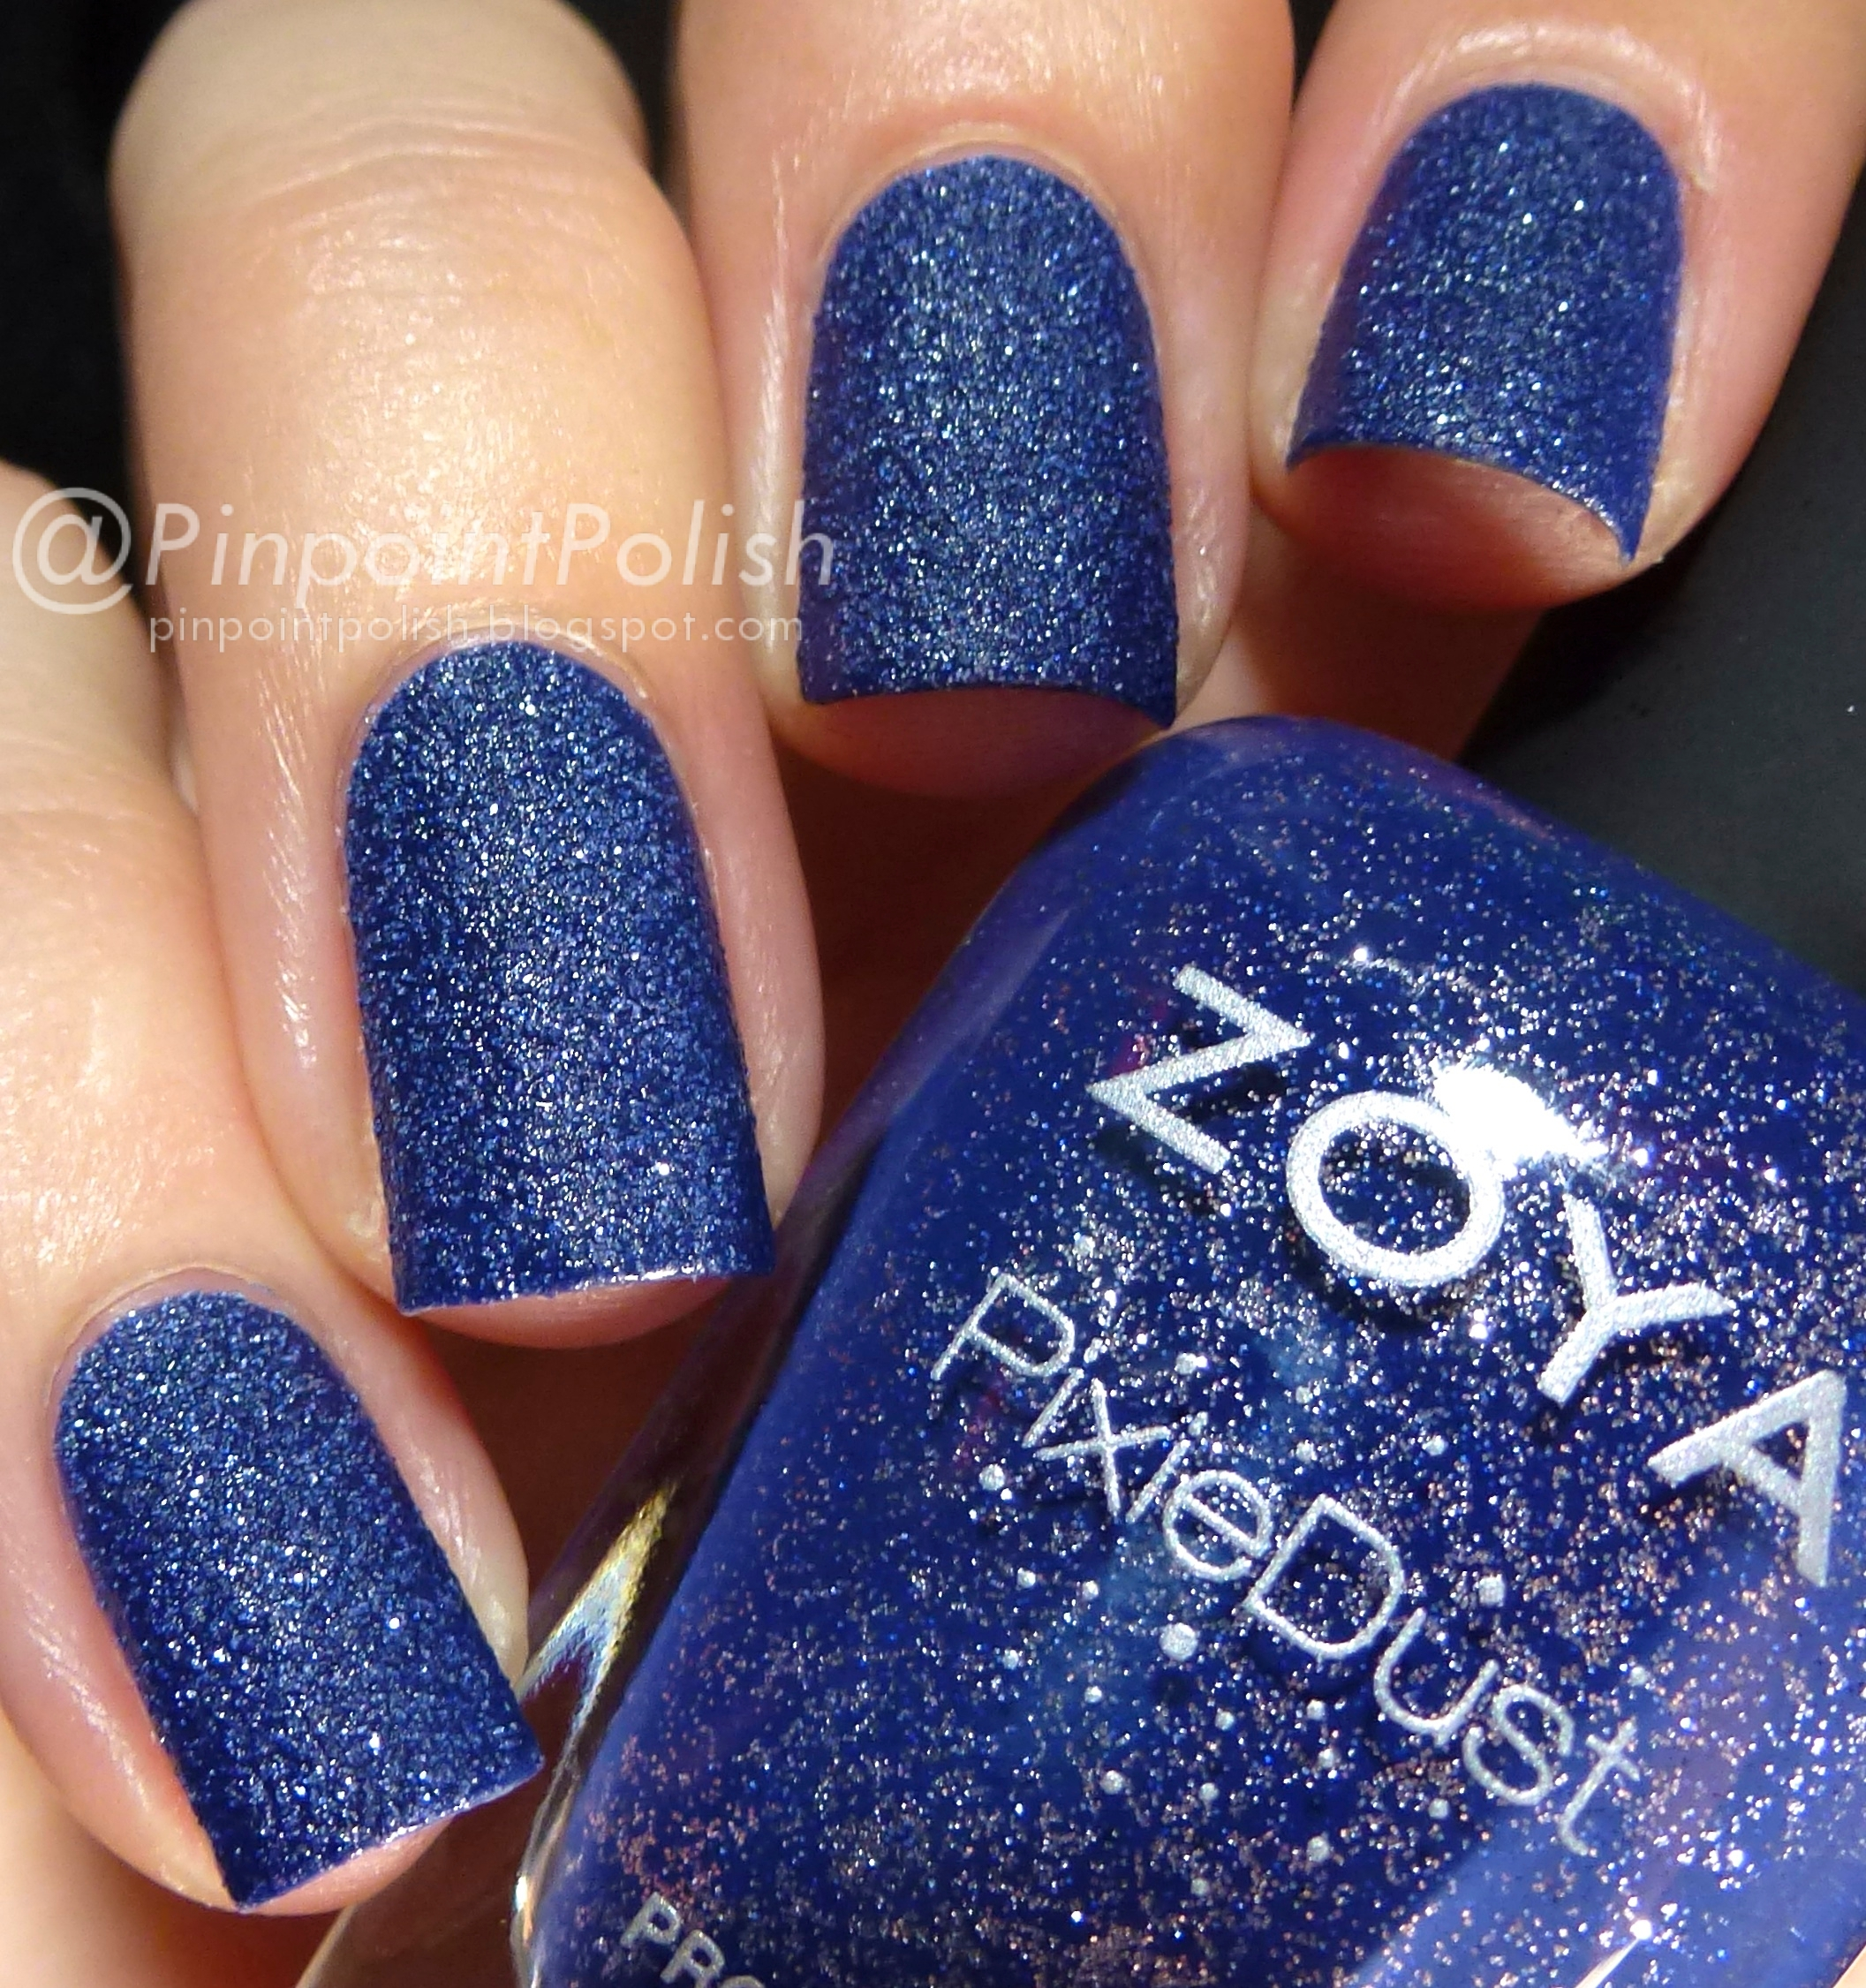 Zoya, Sunshine, swatch